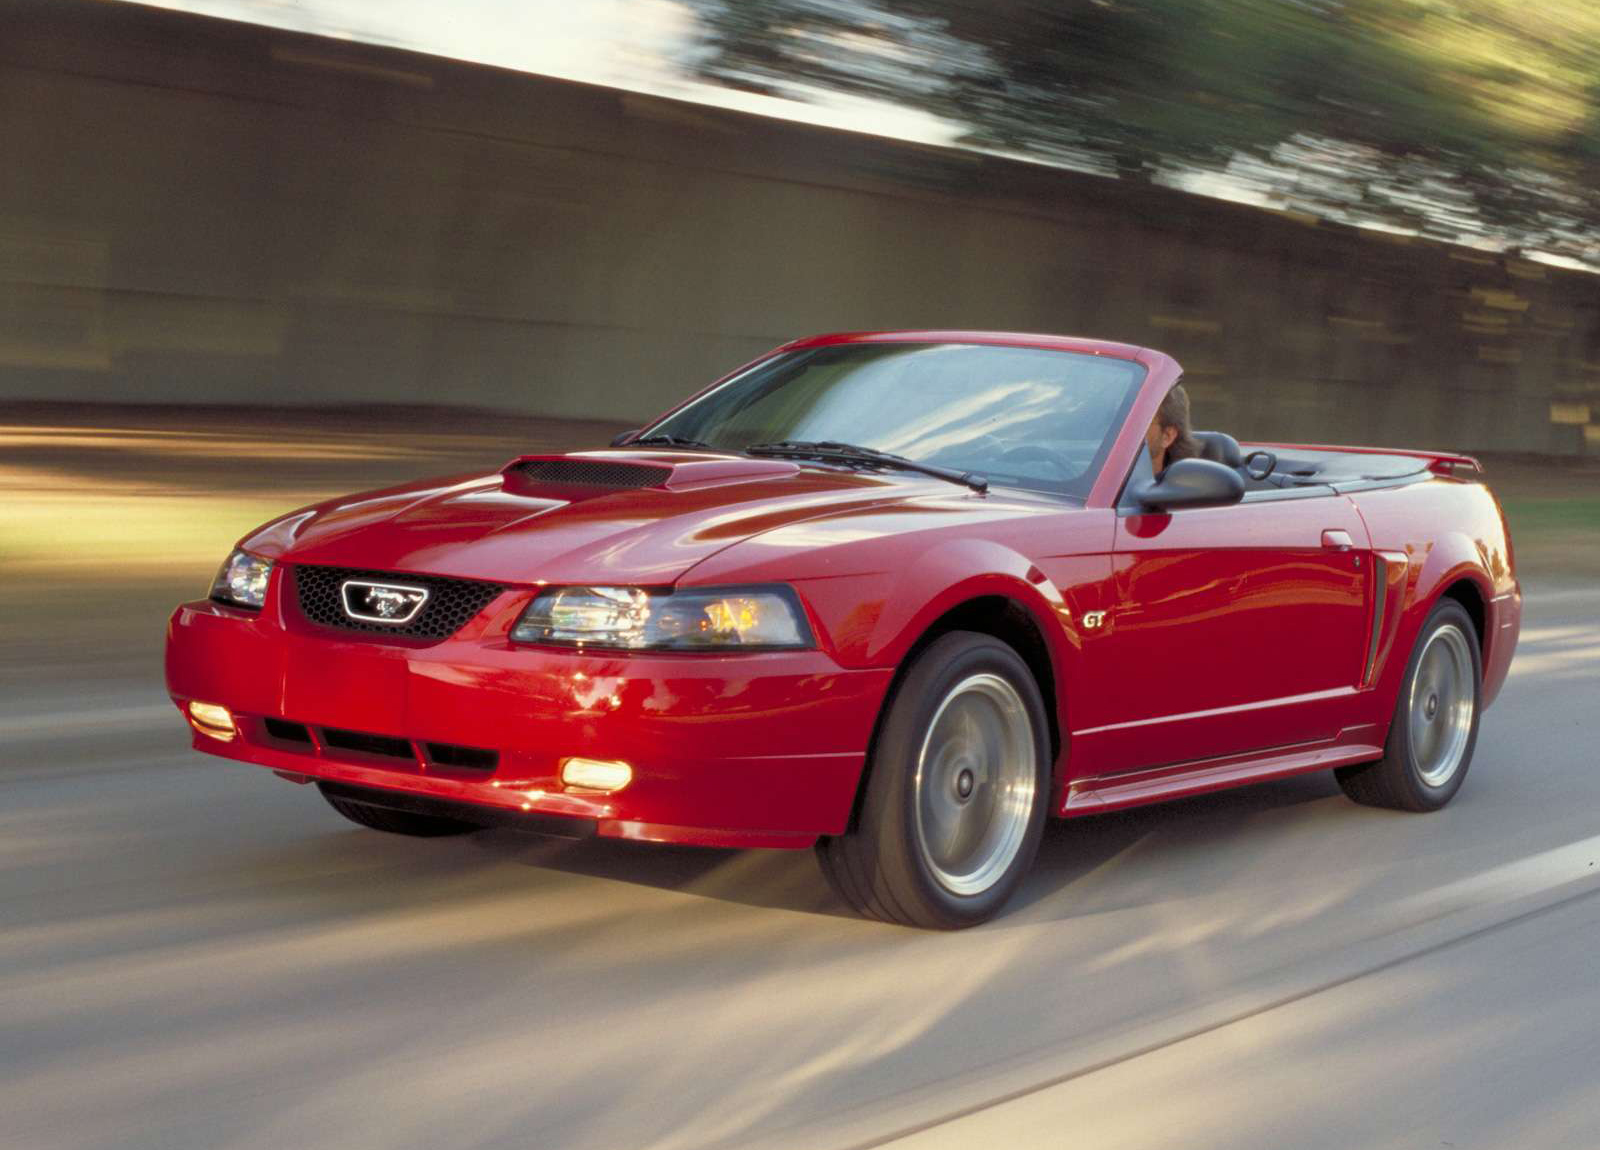 Ford Mustang GT Convertible photo #2